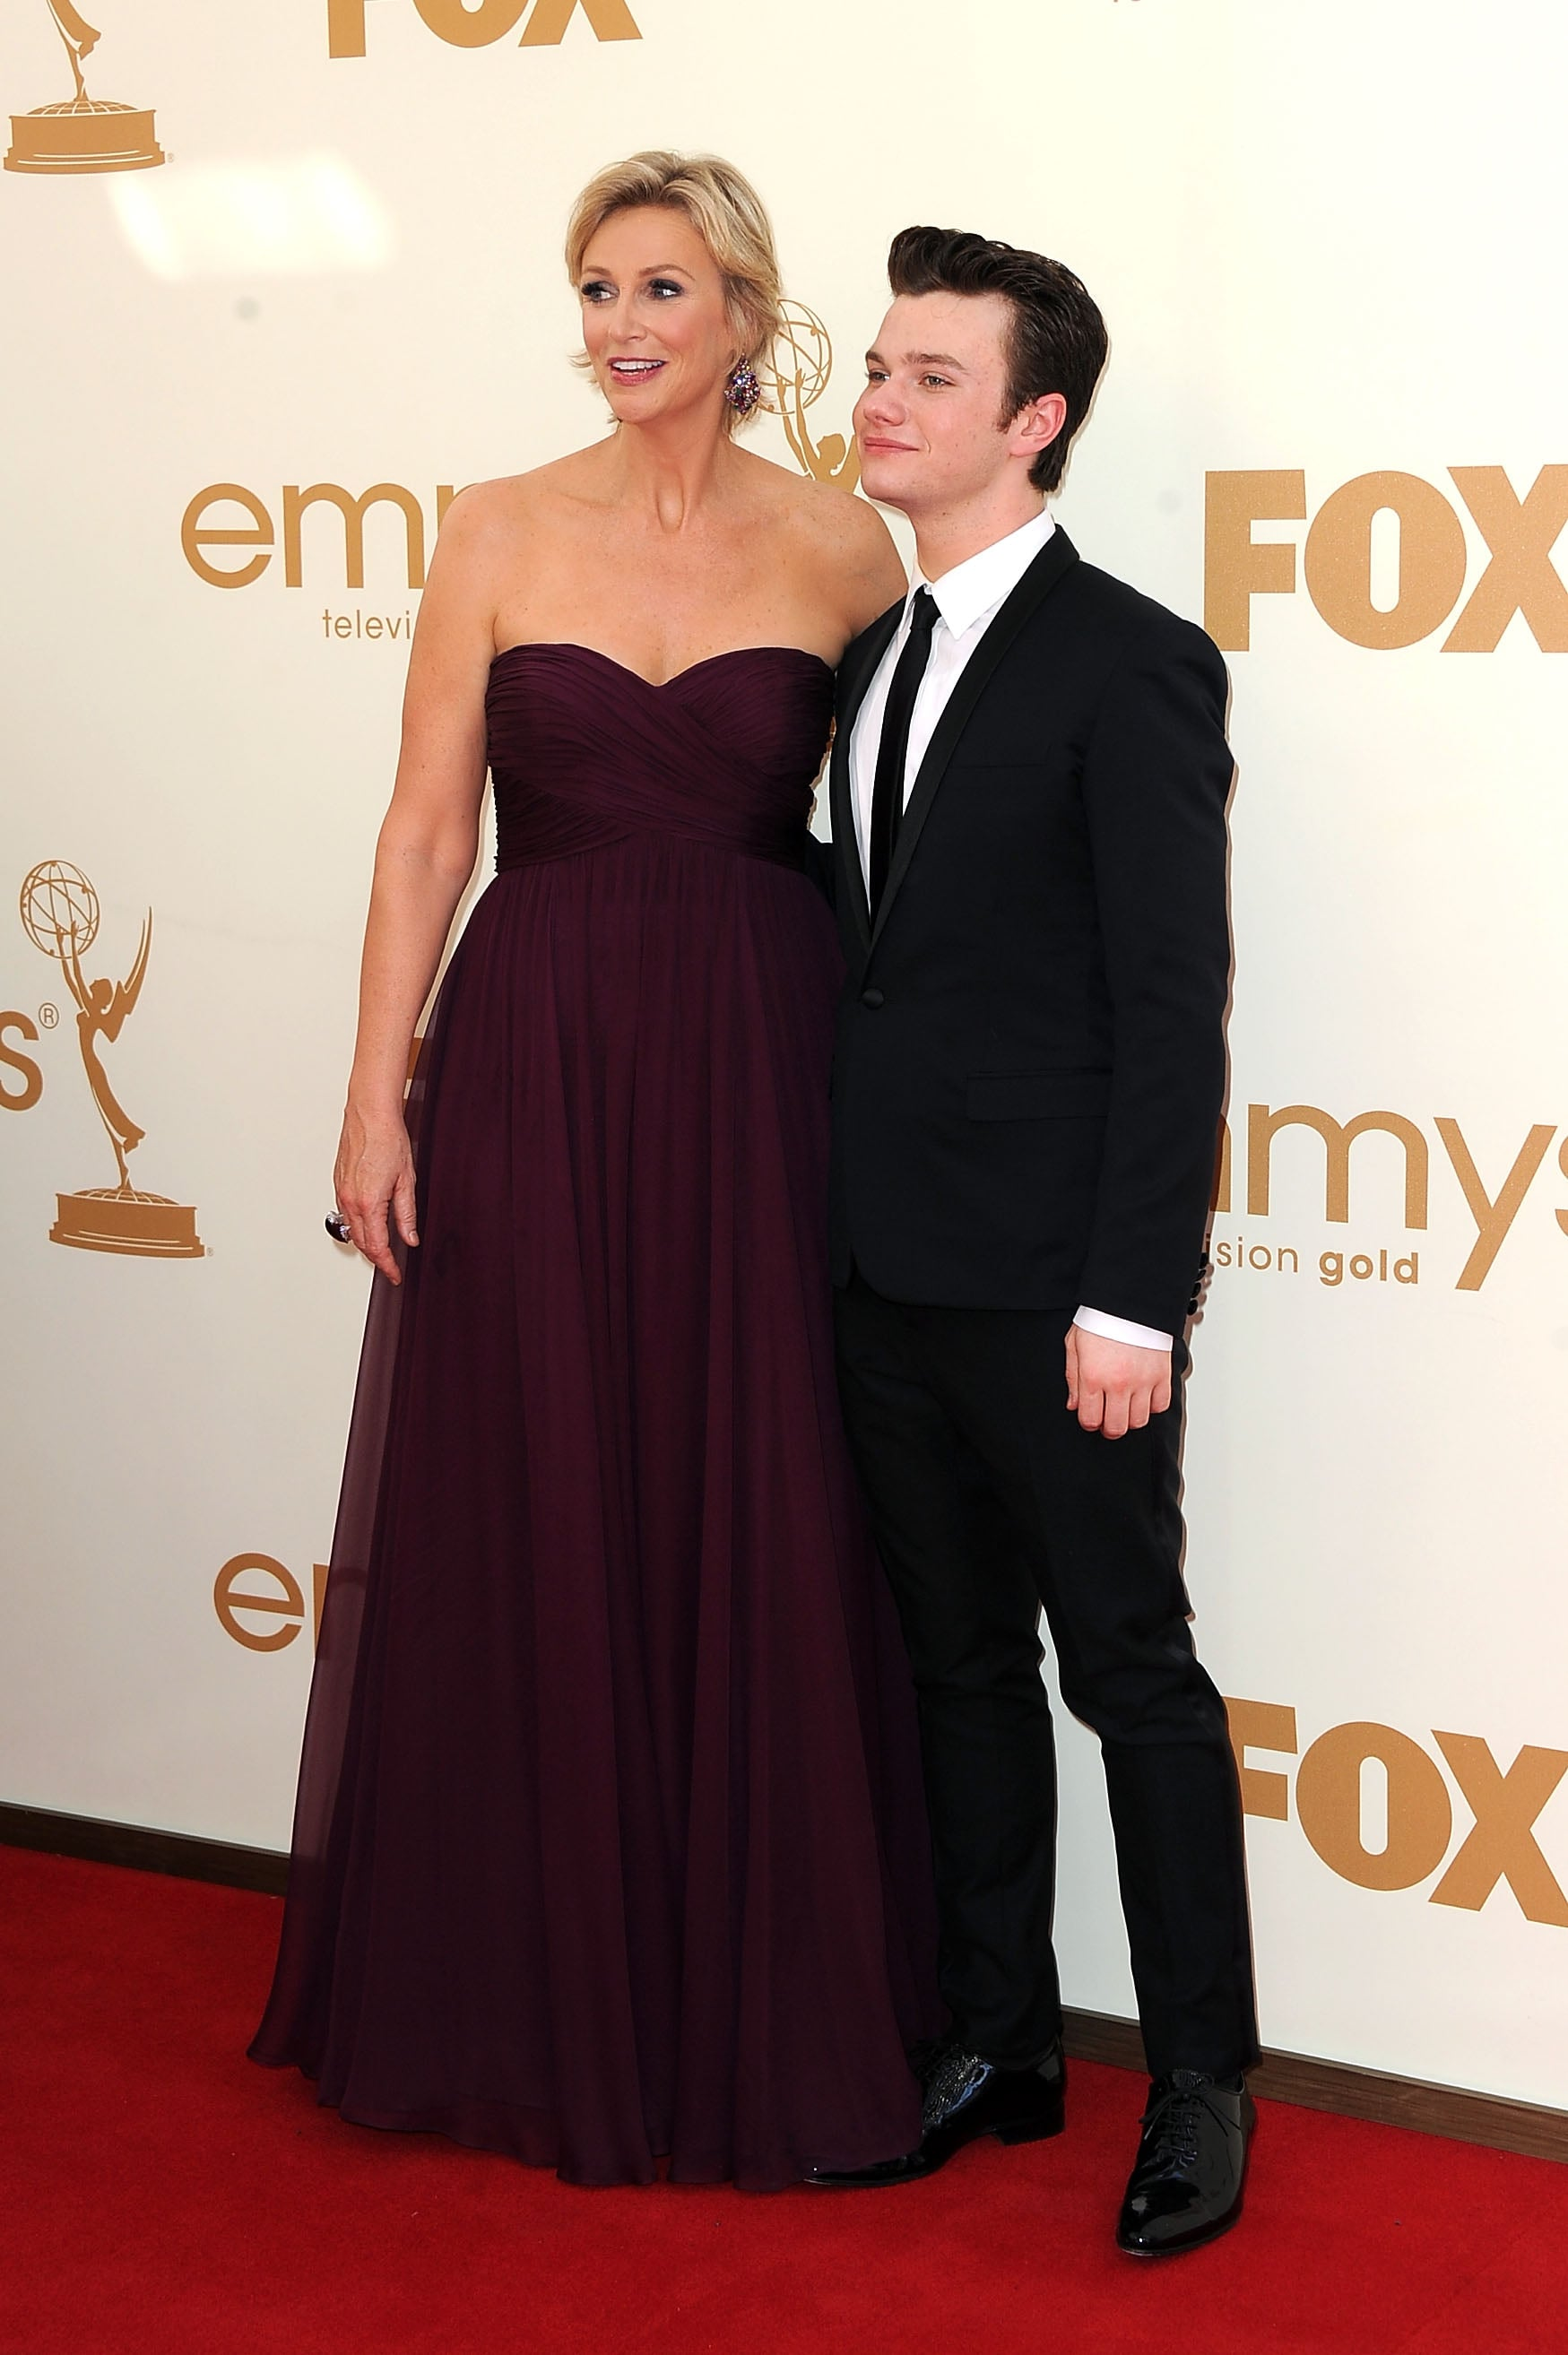 Jane Lynch and Chris Colfer at the Emmys.